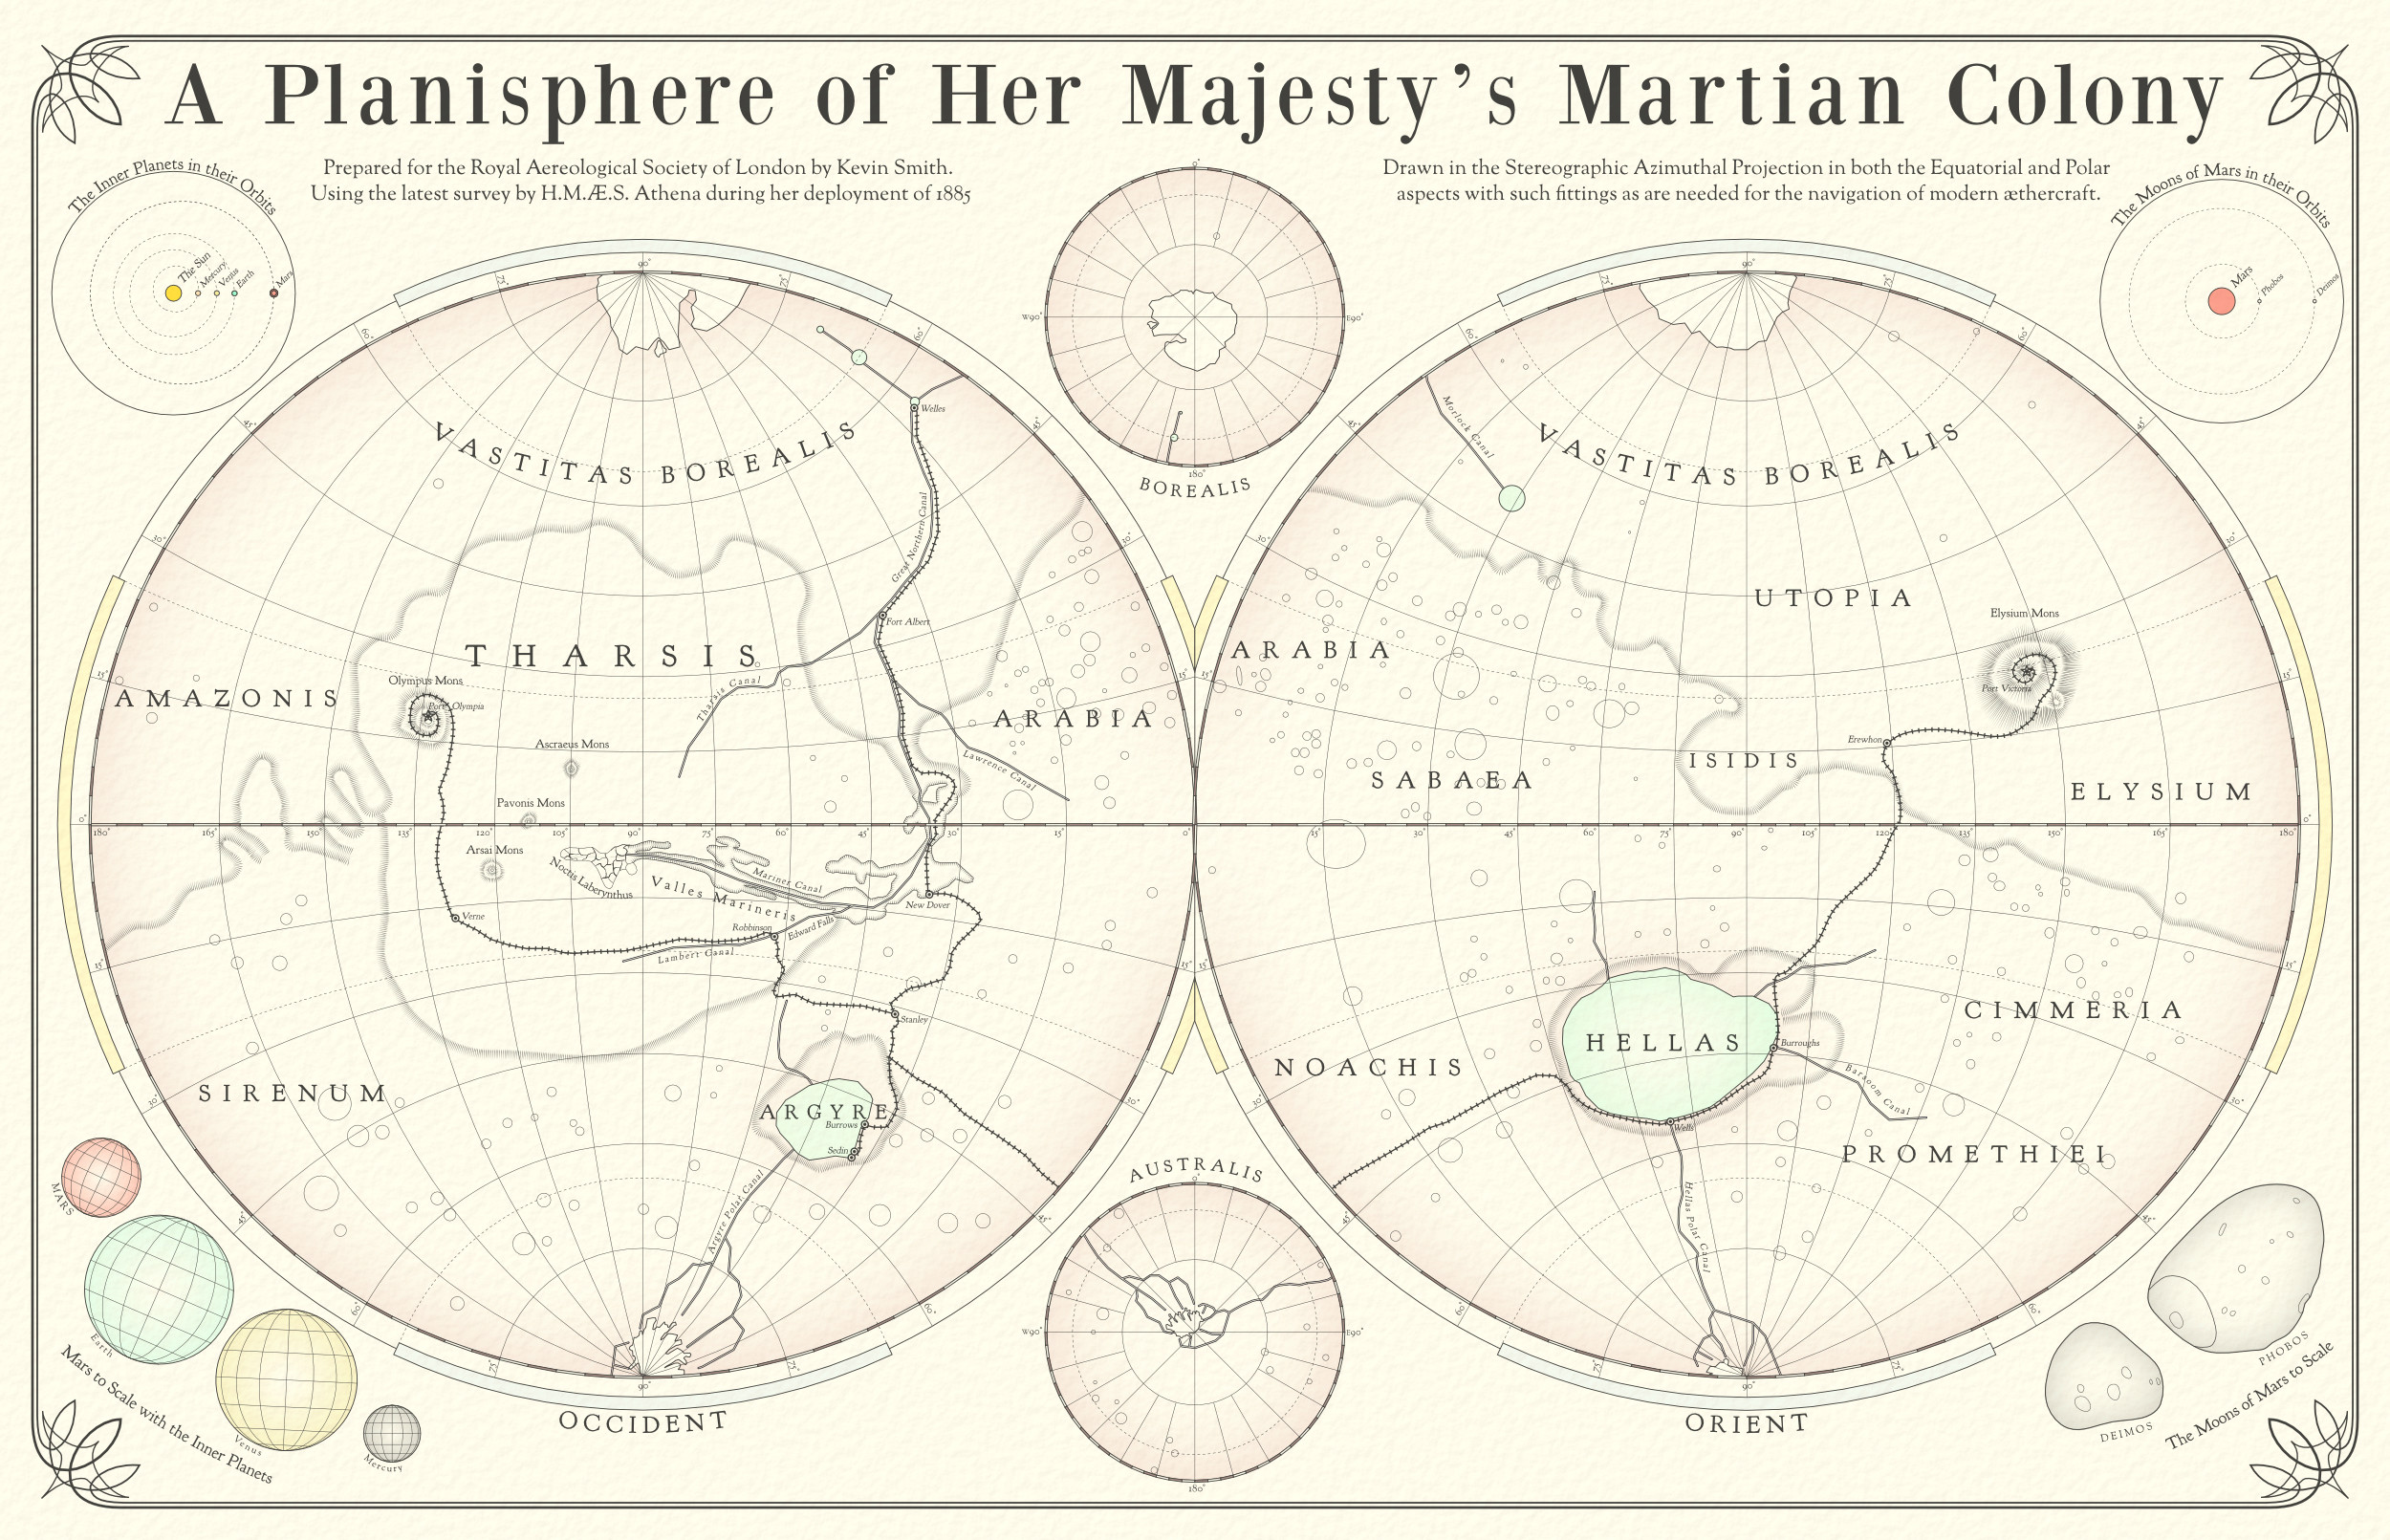 A Planisphere of Her Majesty's Martian Colony.